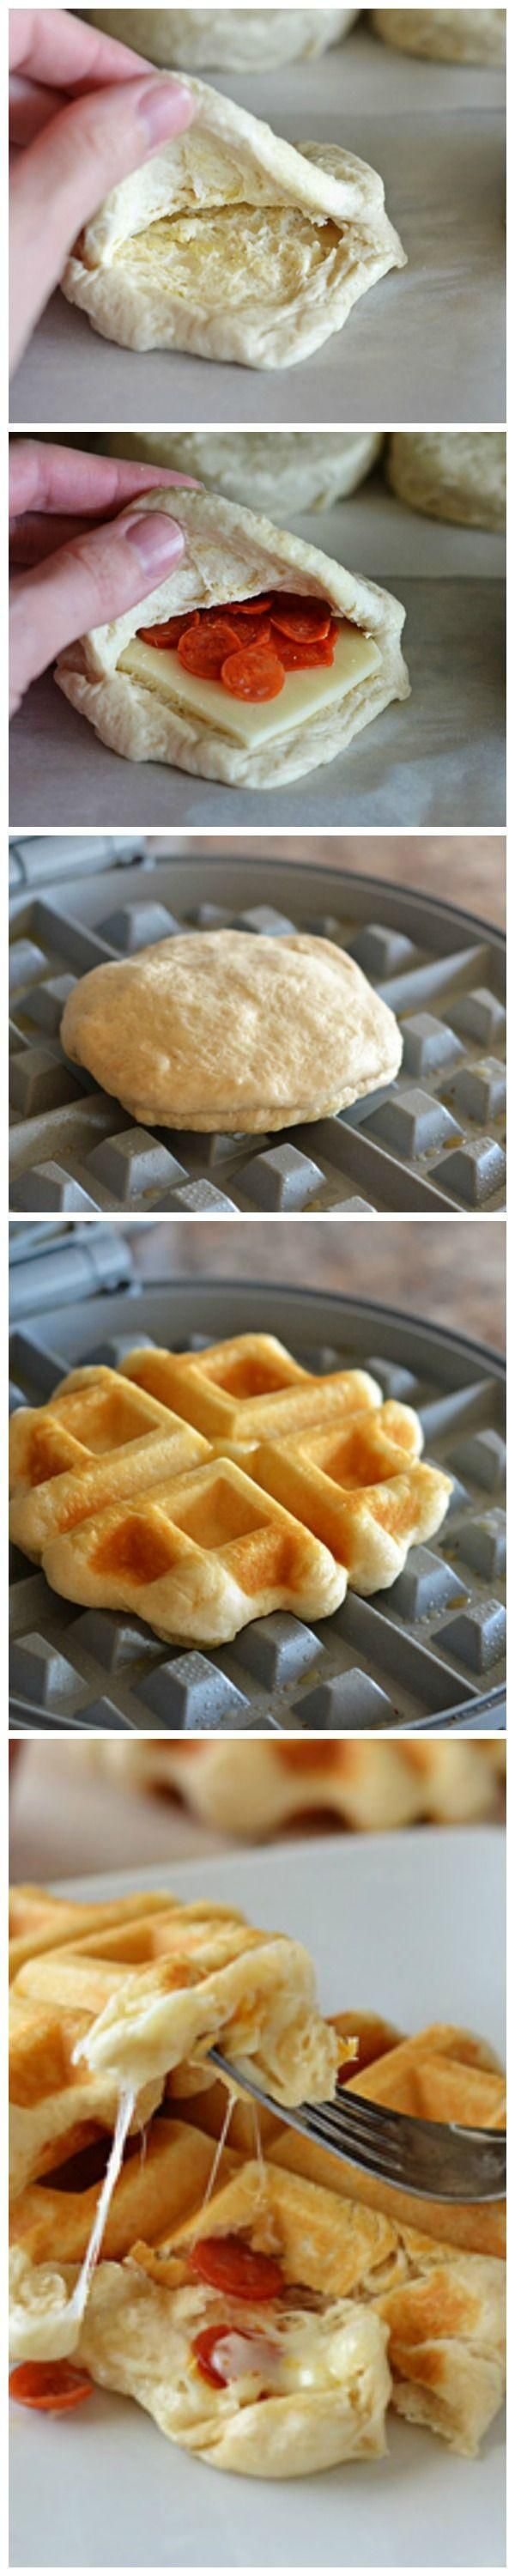 Pizza Waffles How-To